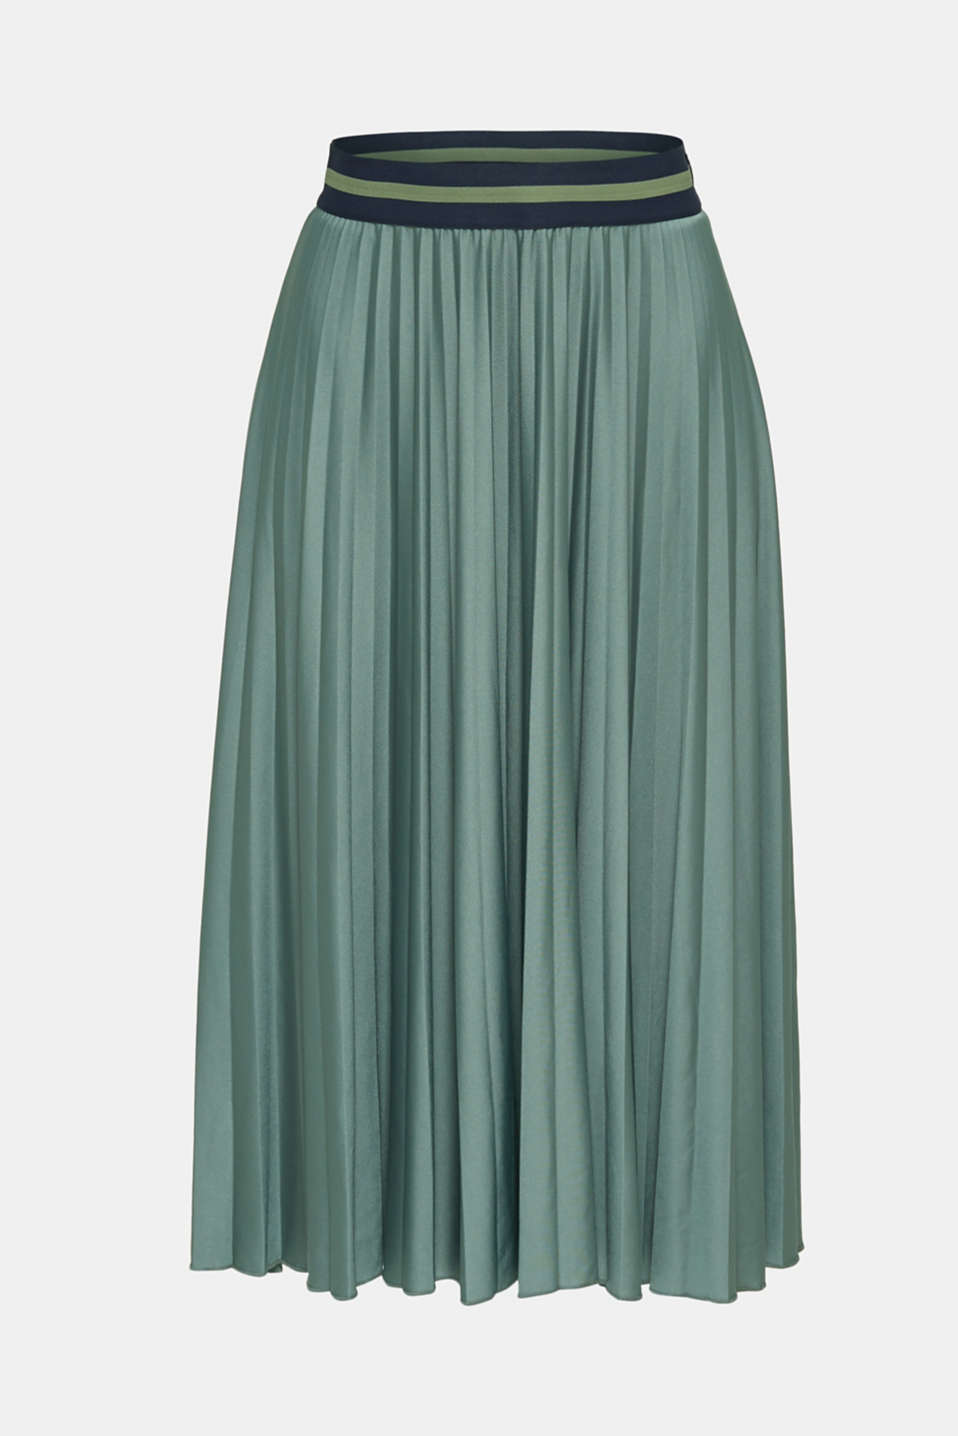 Stretch jersey skirt with accordion pleats, KHAKI GREEN, detail image number 7